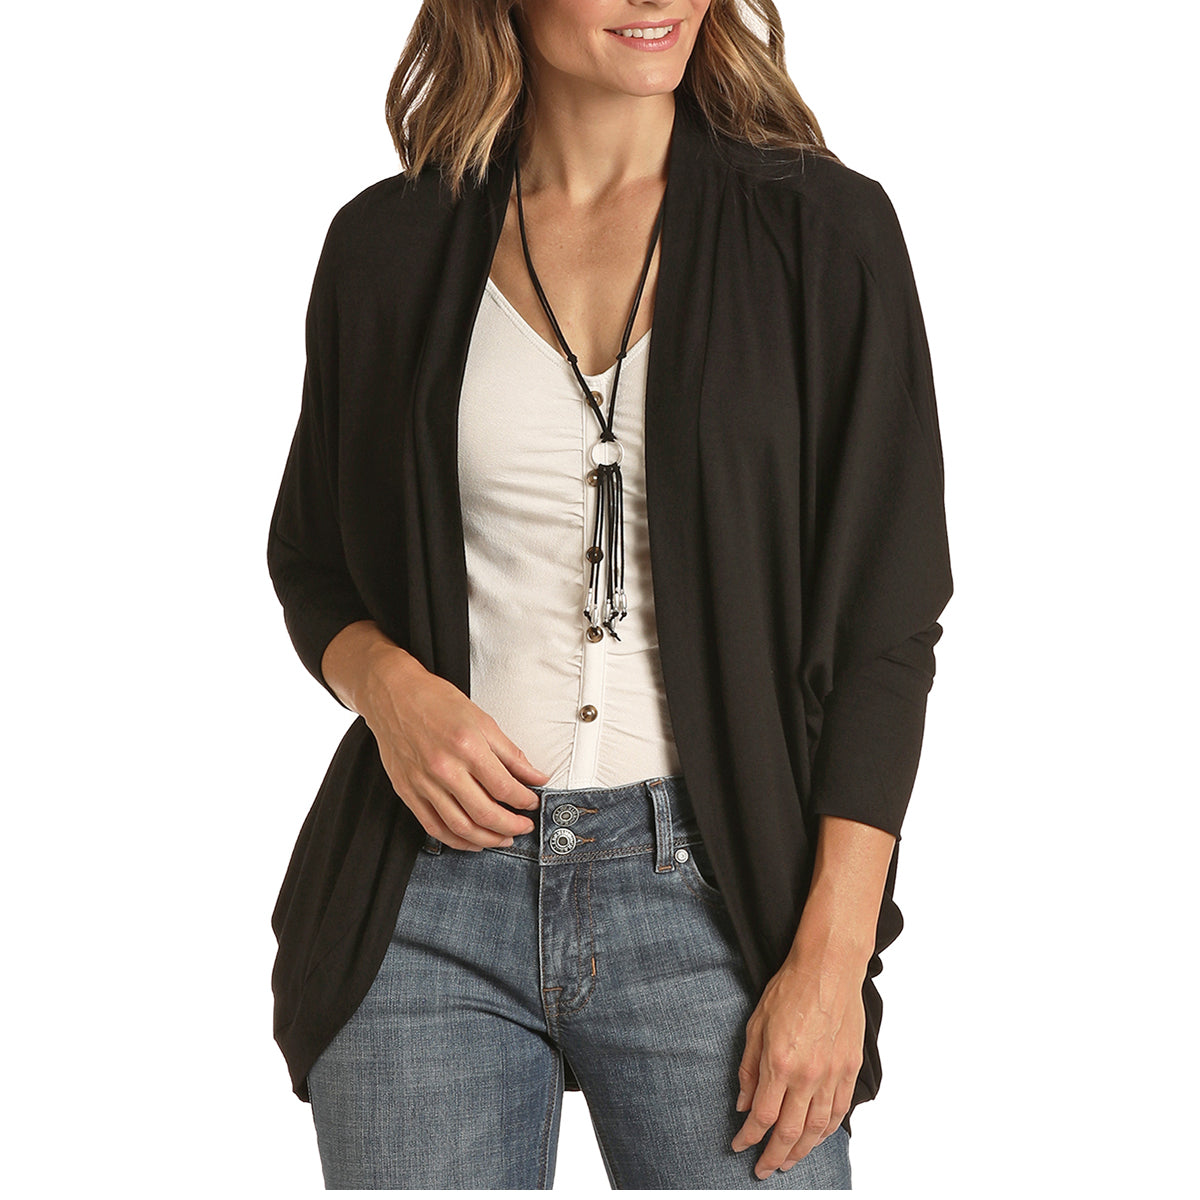 Panhandle Women's Knit Cocoon Cardigan - Black